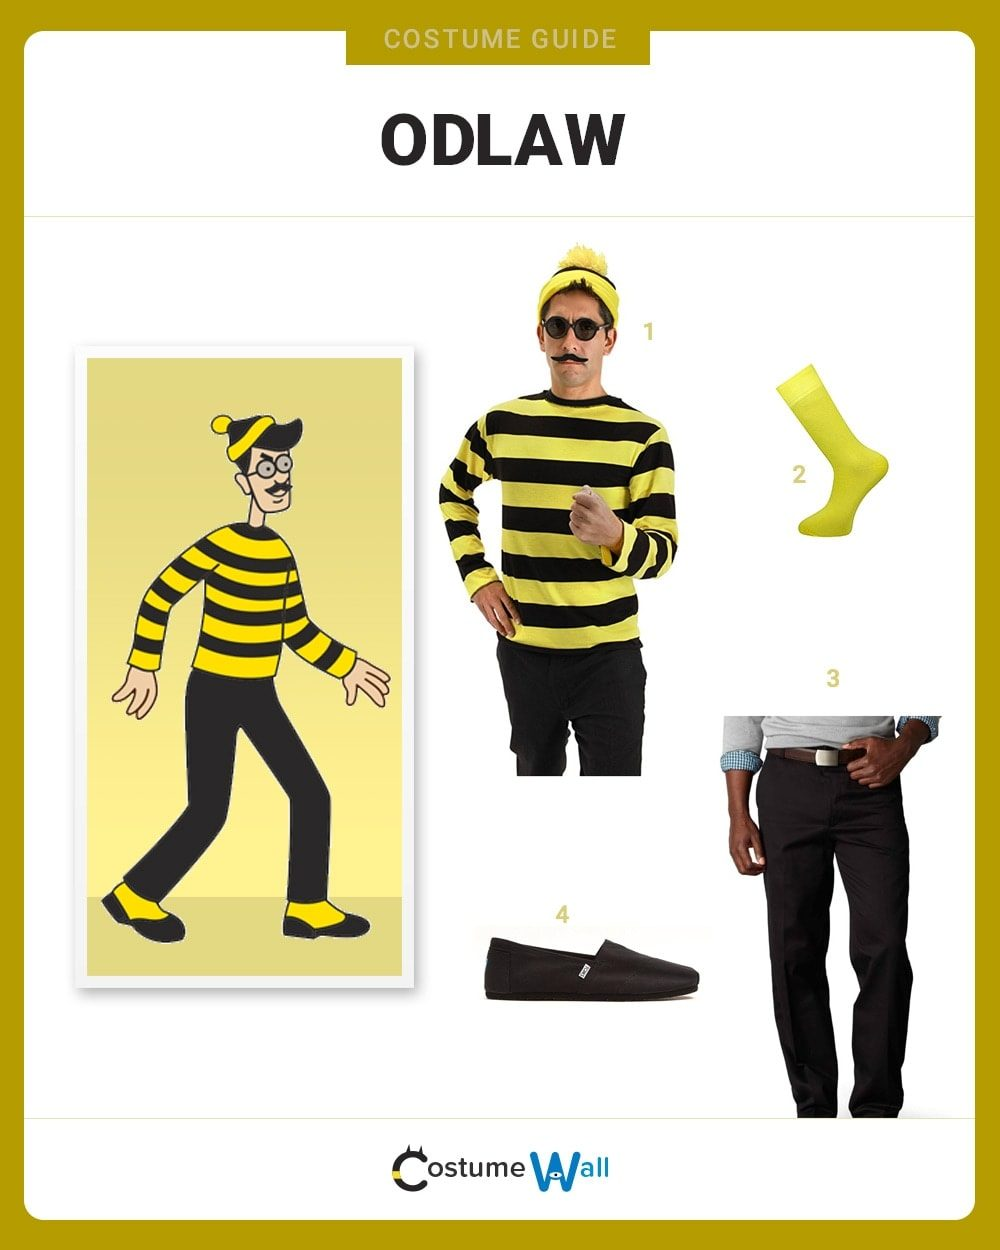 Odlaw Costume Guide